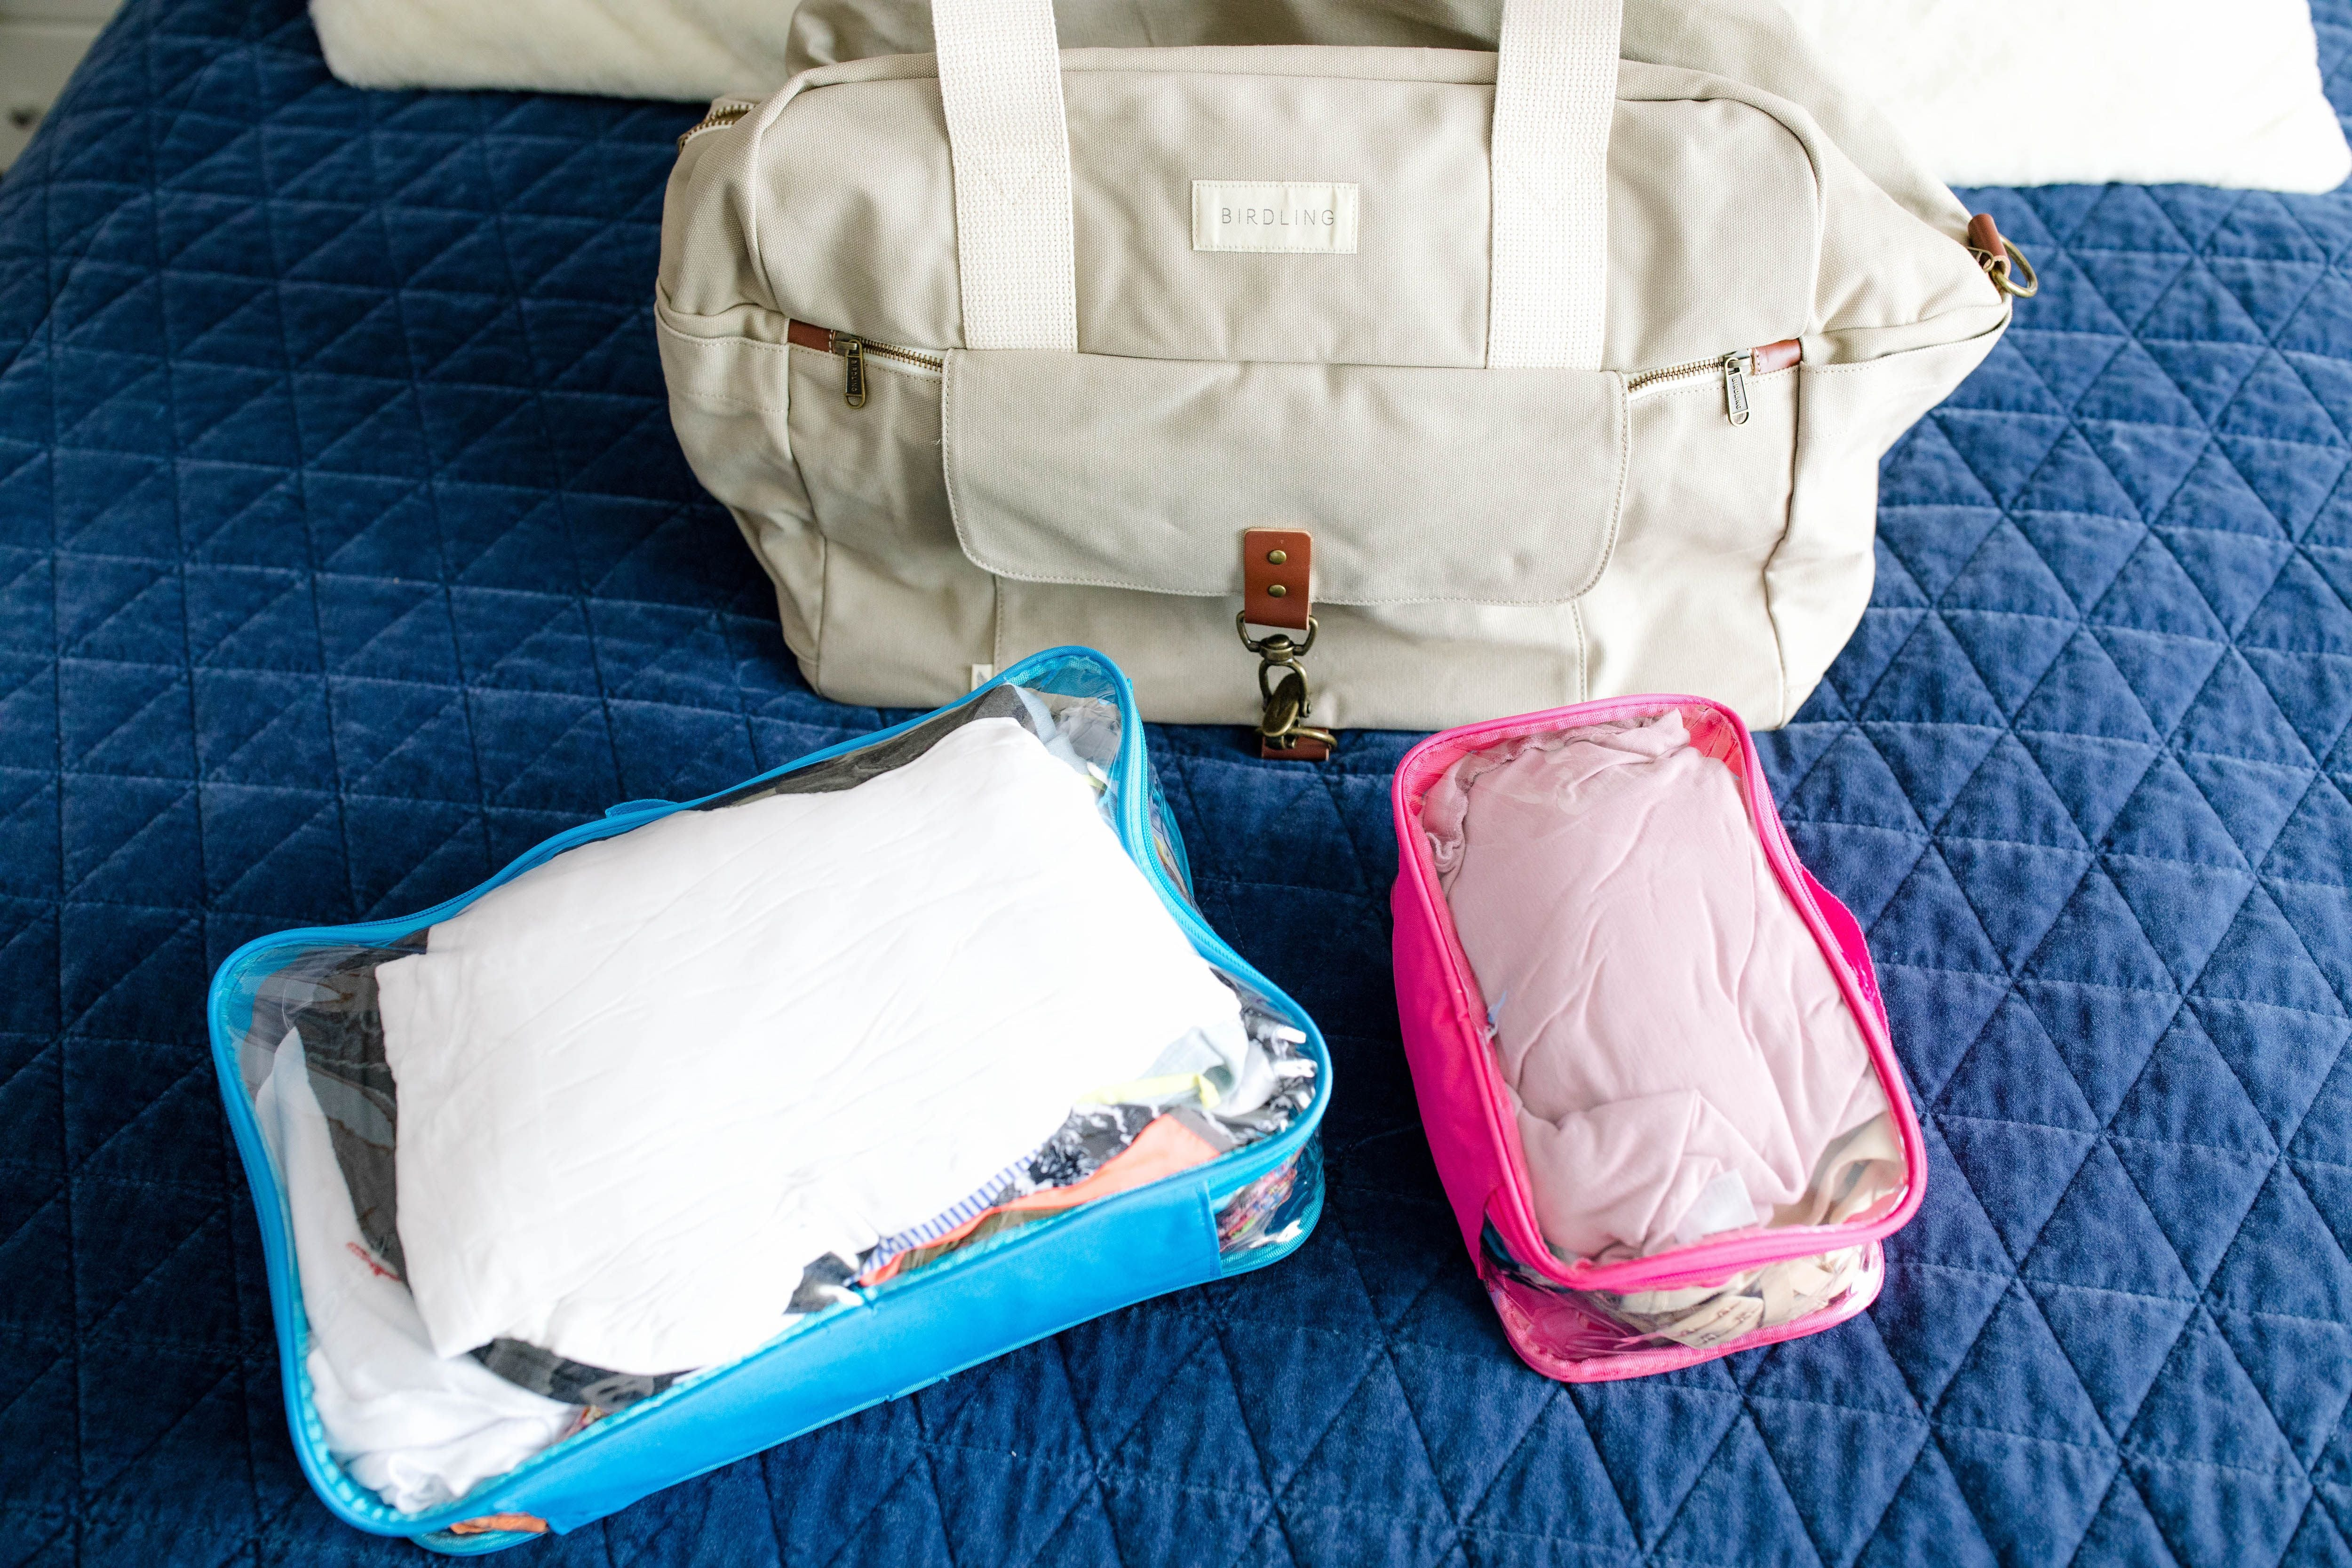 Clear packing cubes and duffel bag for an overnight trip